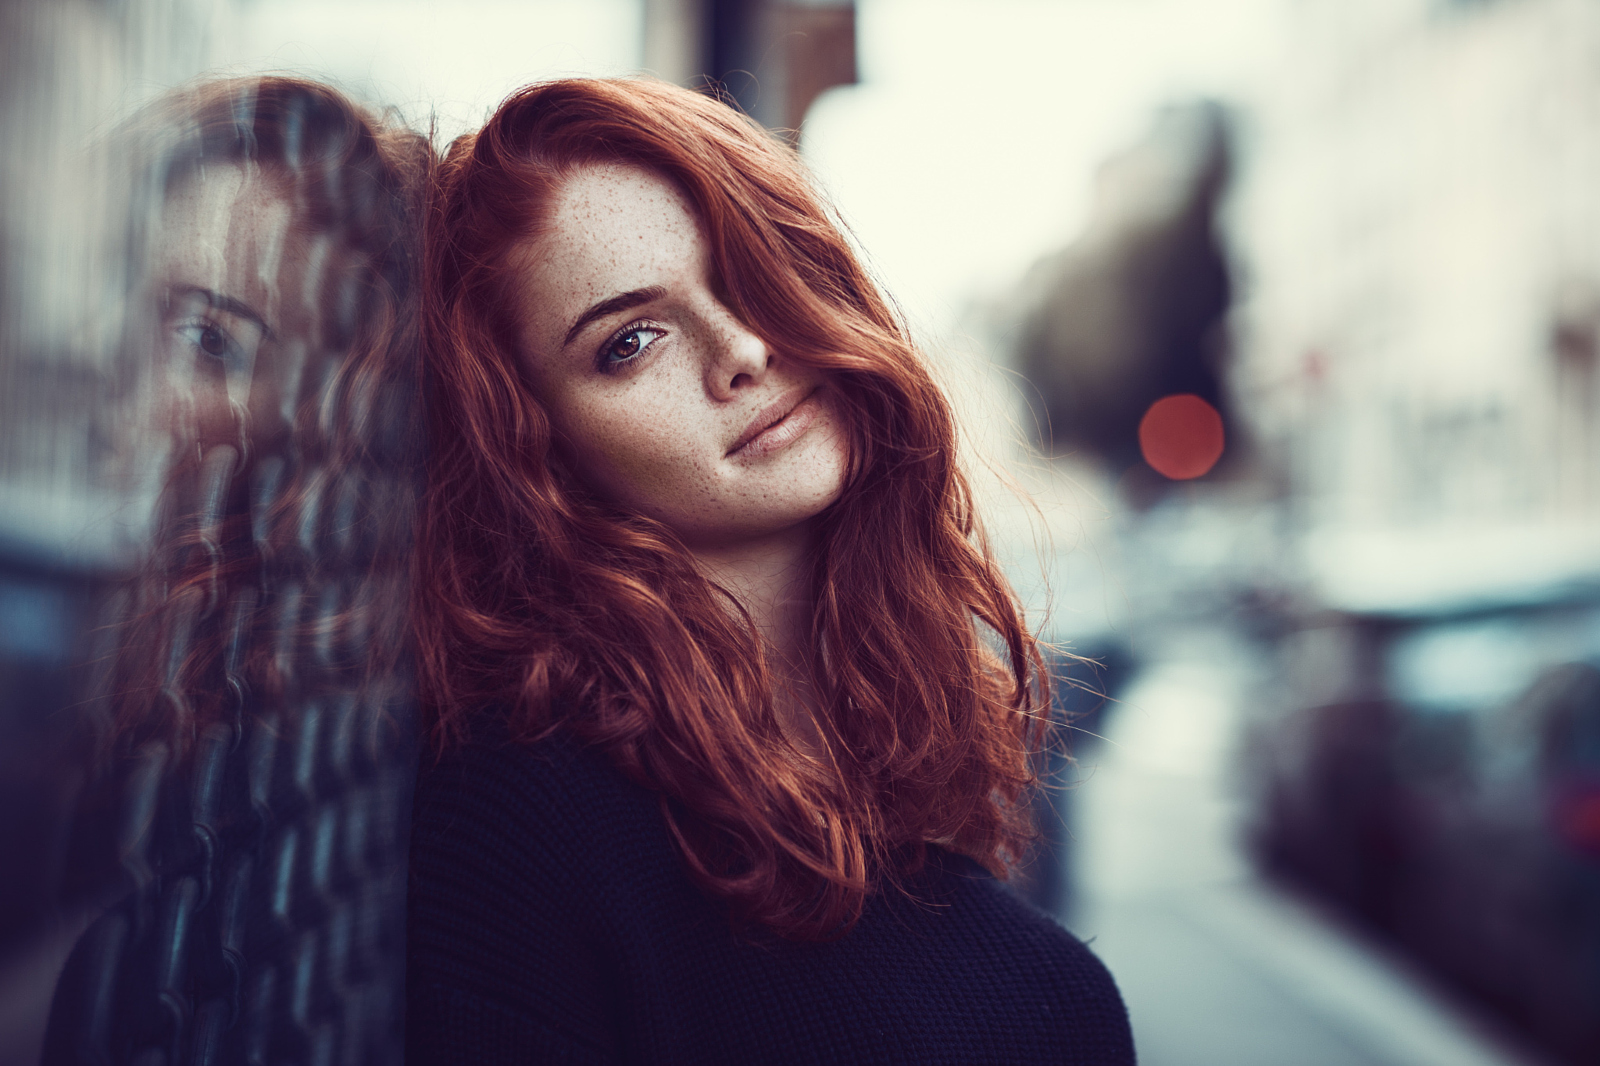 30 Beautiful Portraits that'll Make You Wish You Had Freckles